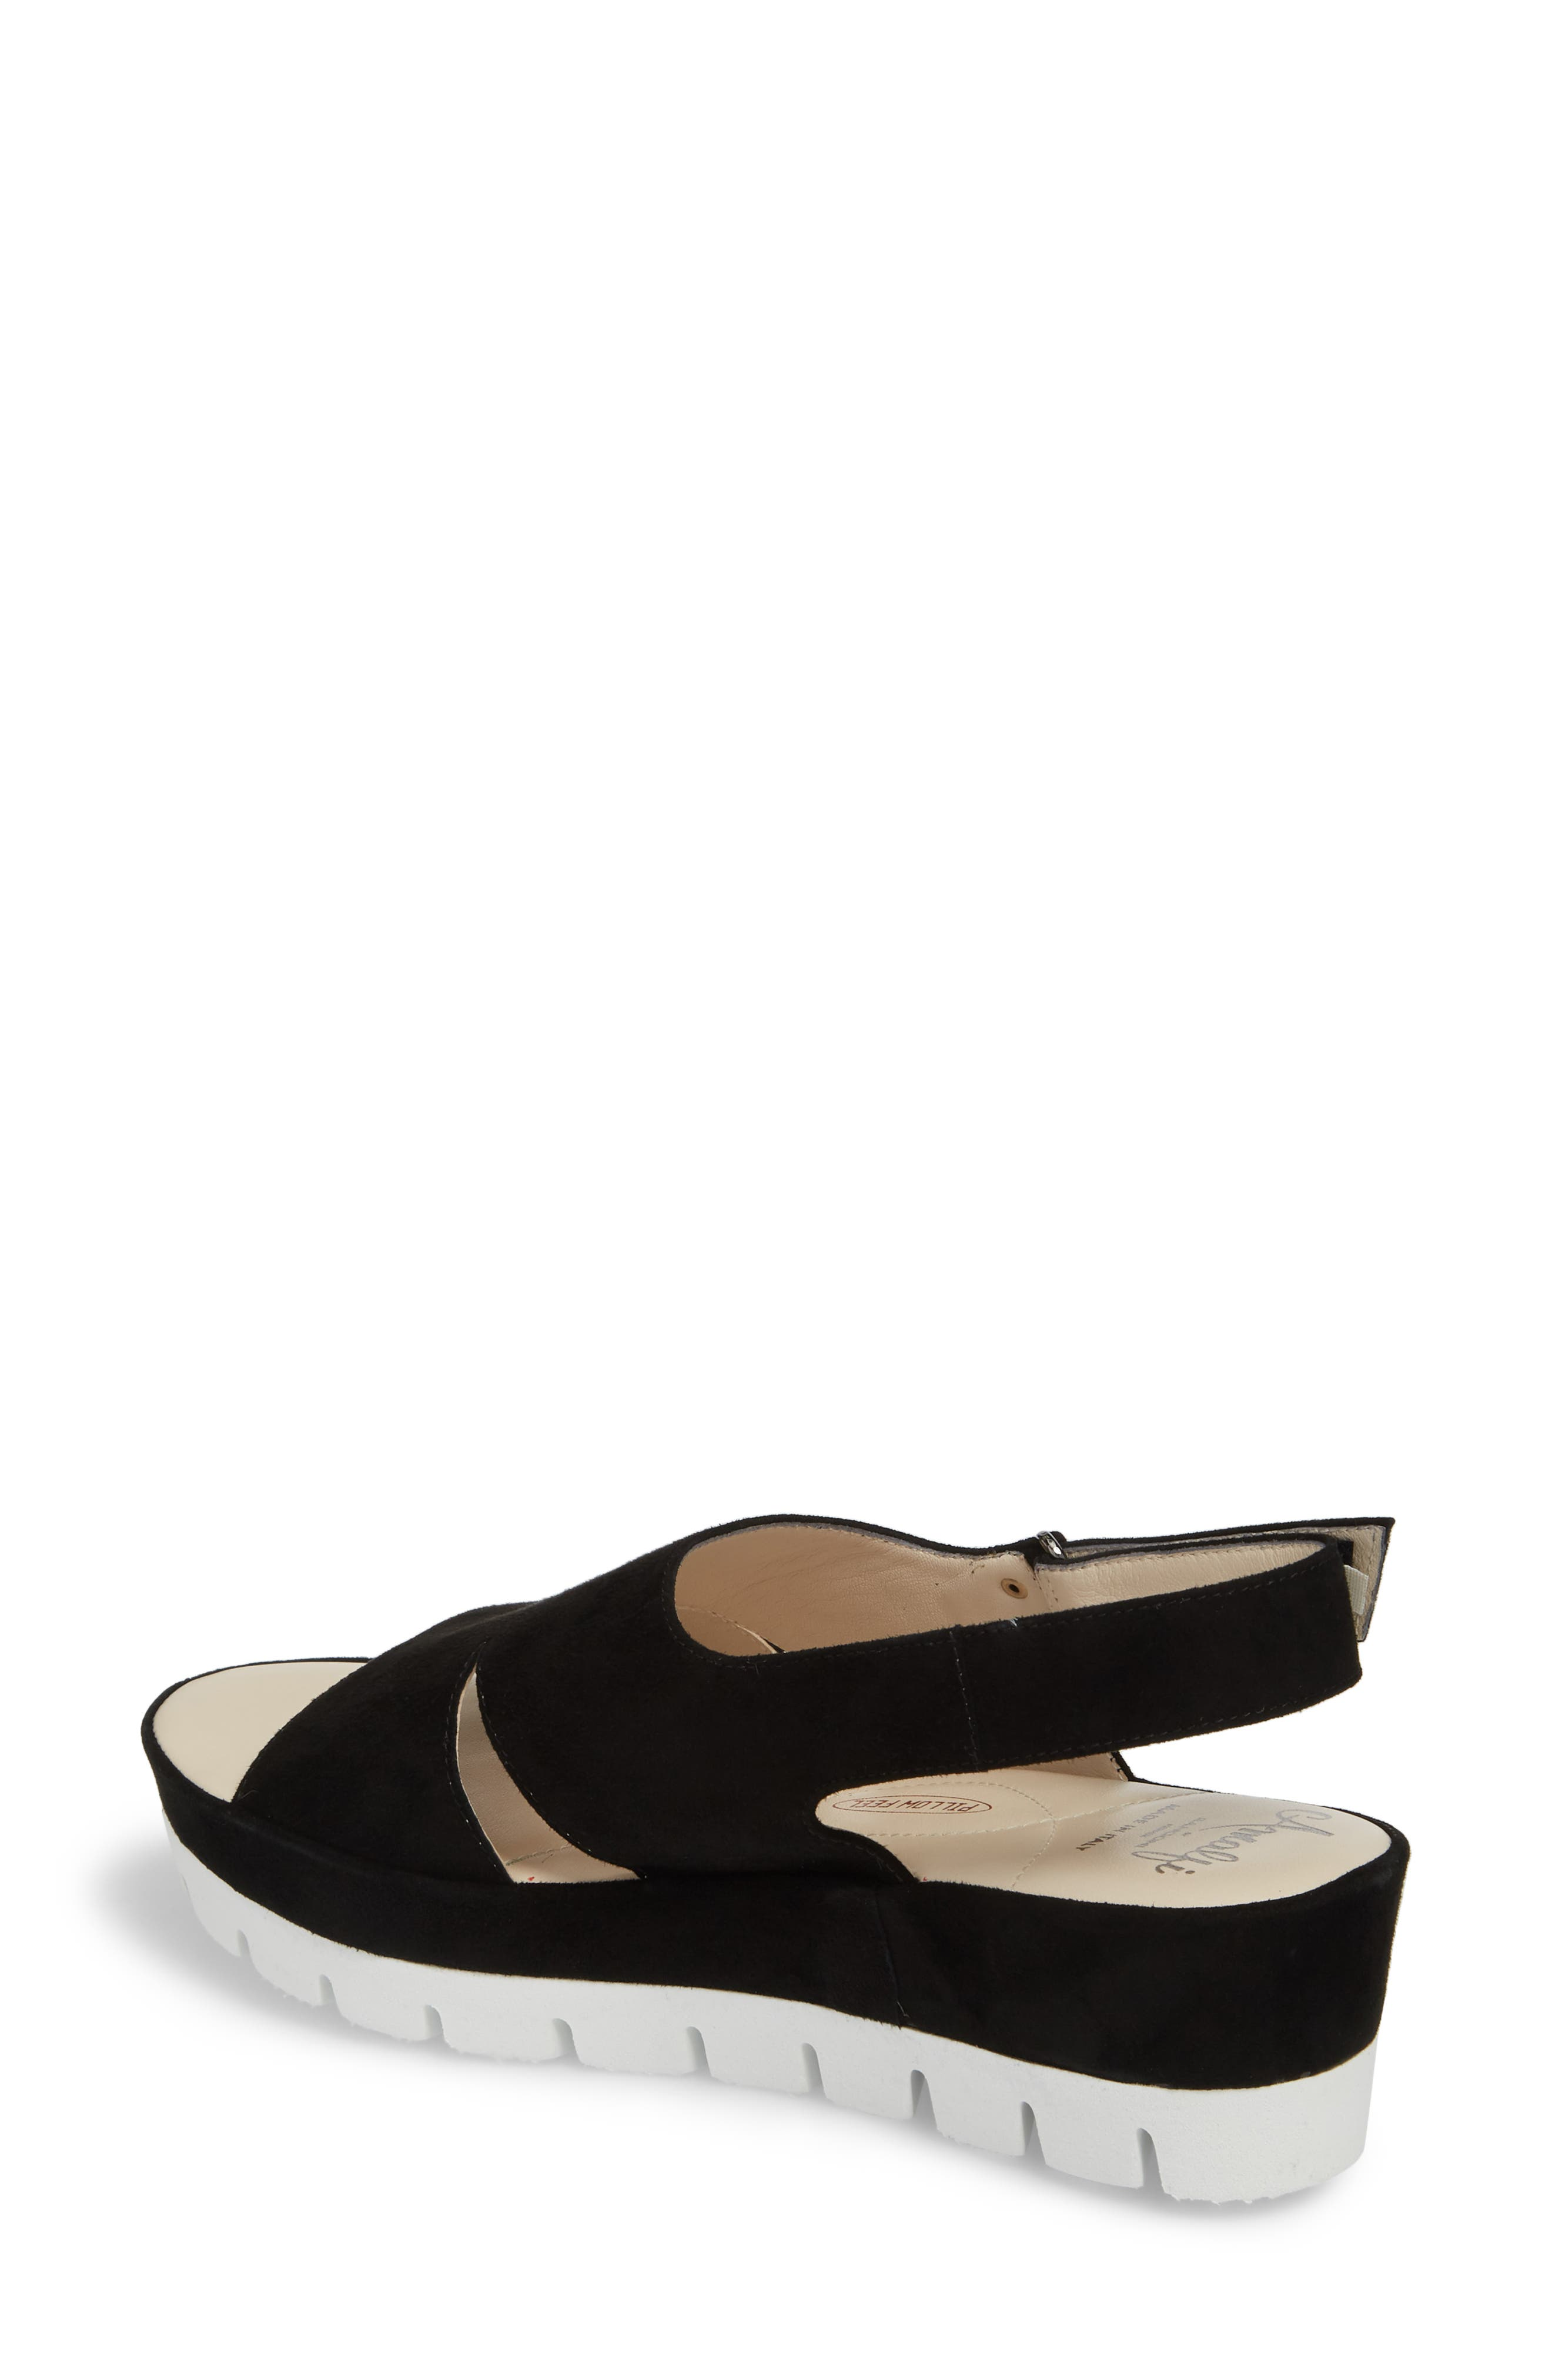 Bergamotto Slingback Wedge Sandal,                             Alternate thumbnail 2, color,                             BLACK SUEDE